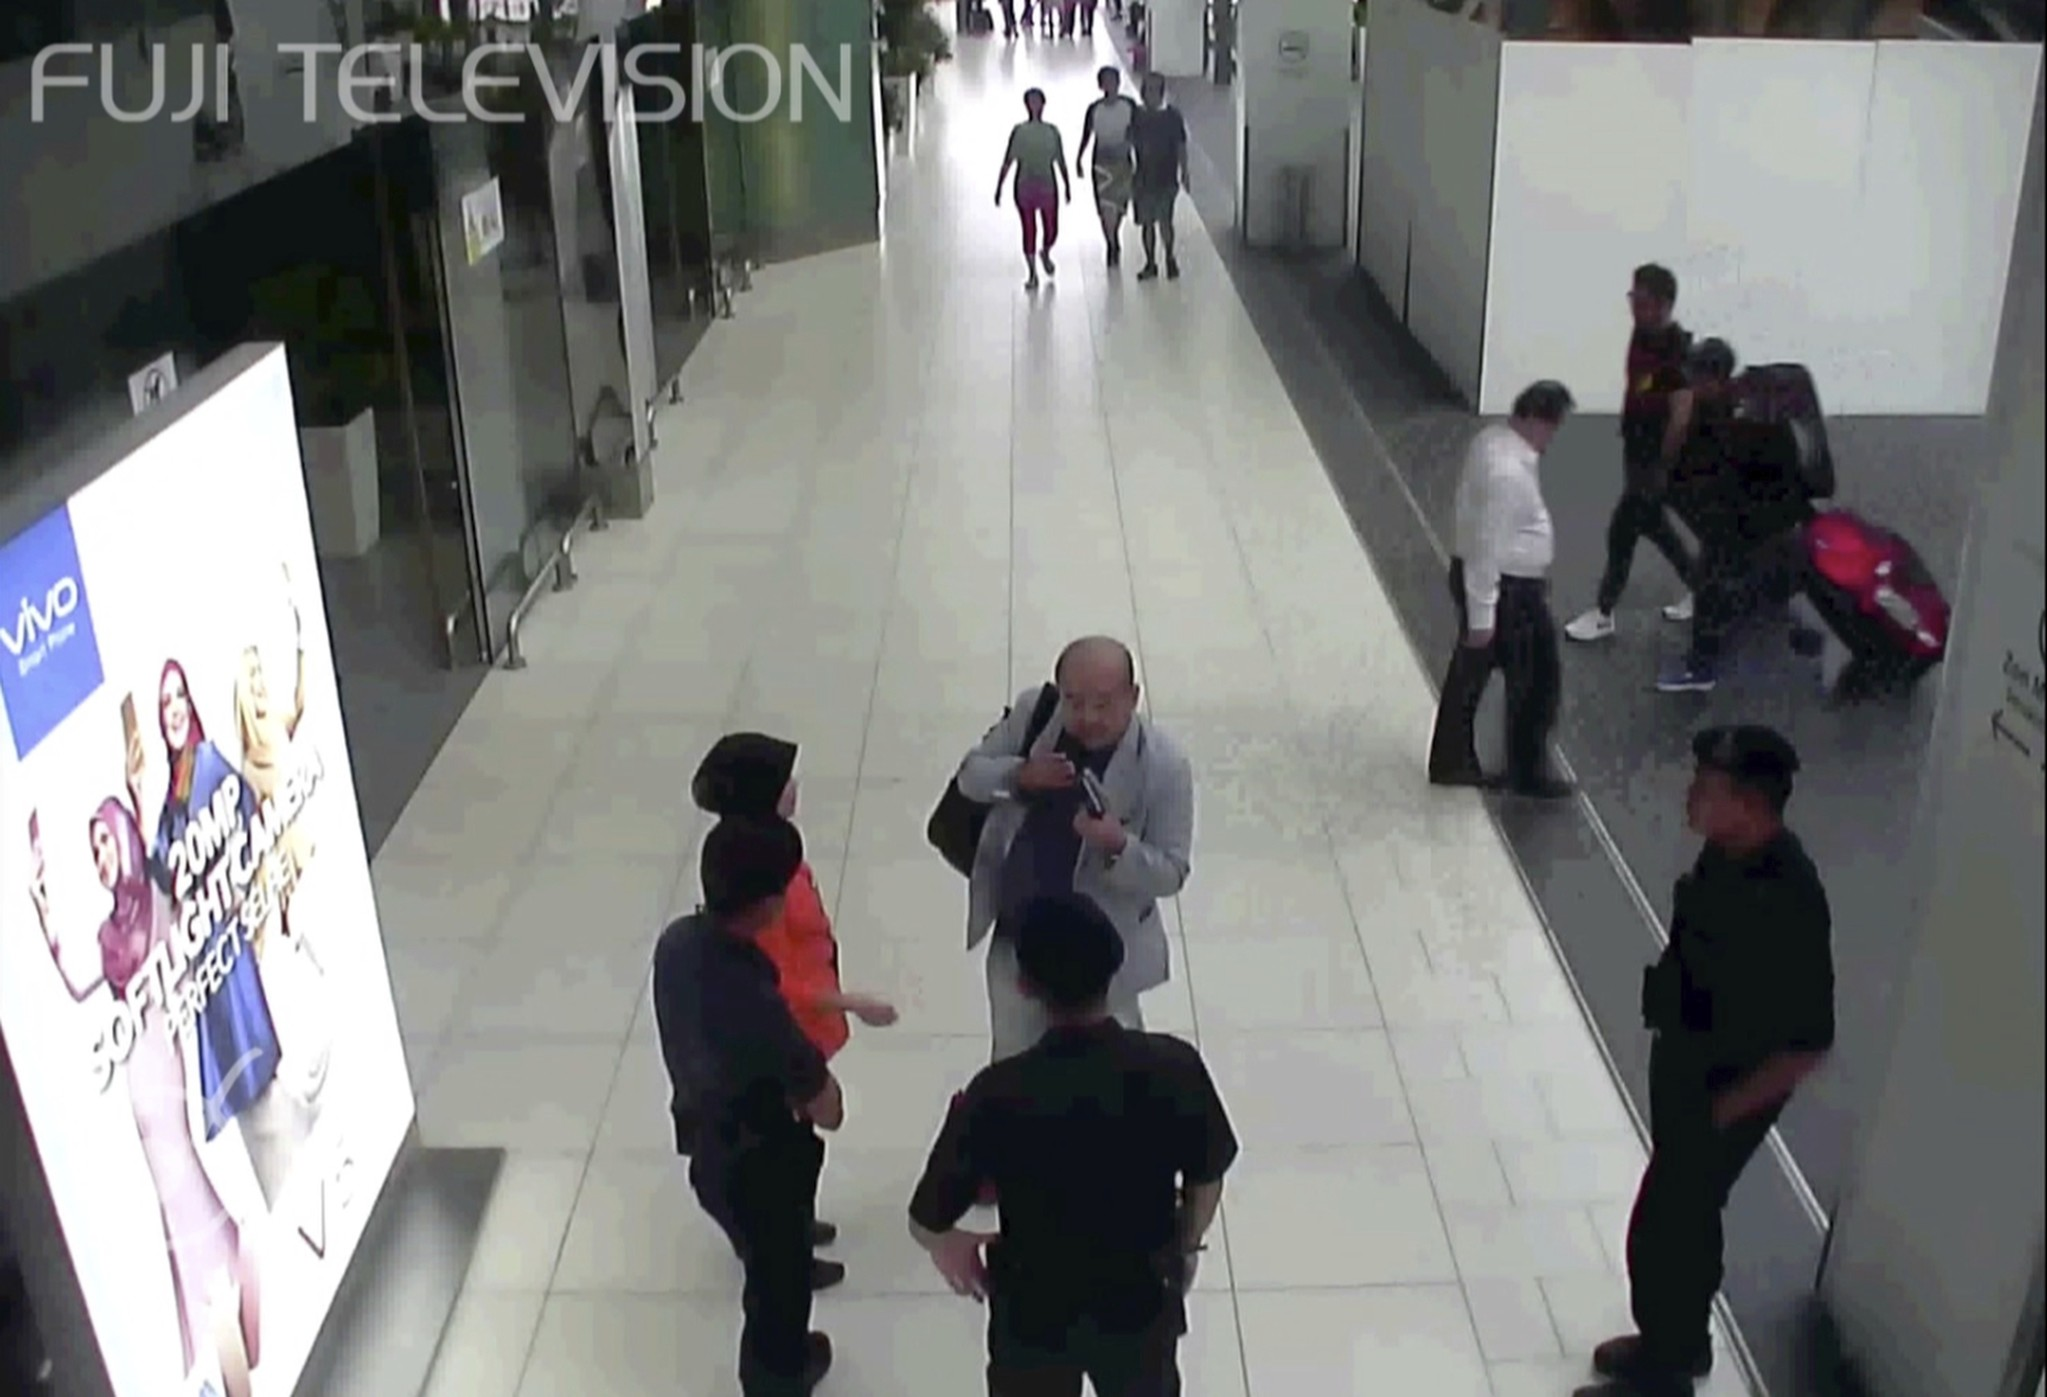 Footage from Kuala Lumpur airport security cameras obtained by Fuji TV, Kim Jong Nam talks to airport security and officials after he was attacked. (Fuji TV via AP)